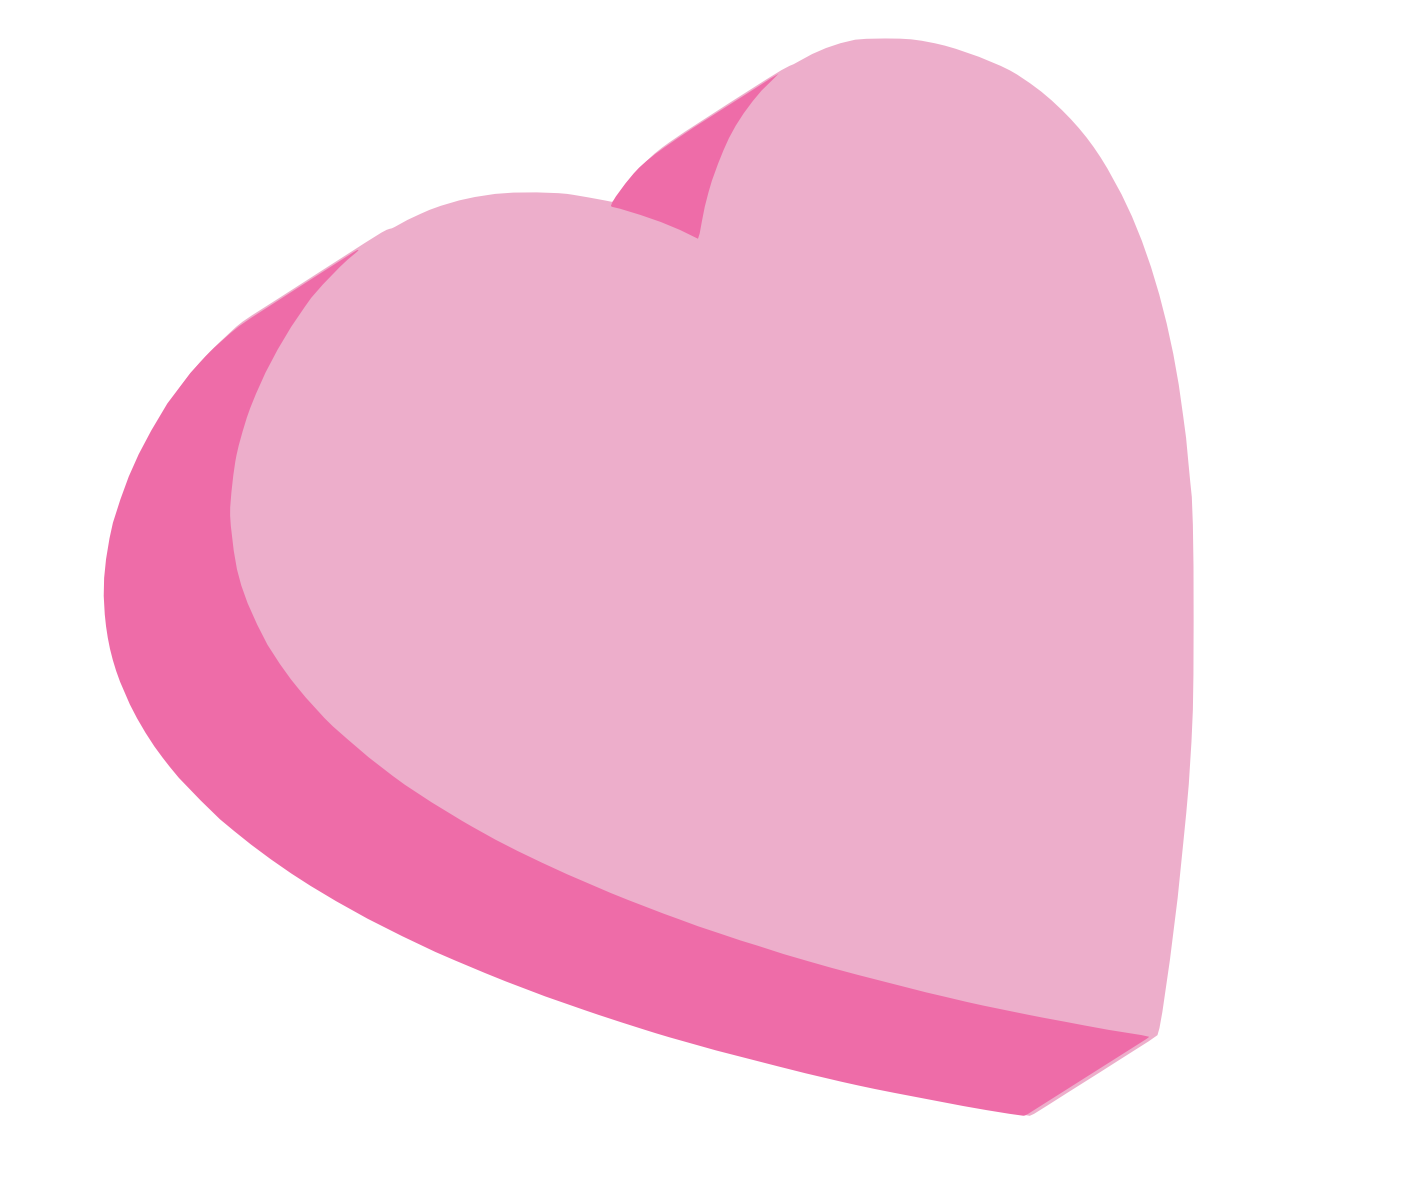 Candy Heart Svg Tu J S And A Taco-Candy Heart Svg Tu J S And A Taco-3